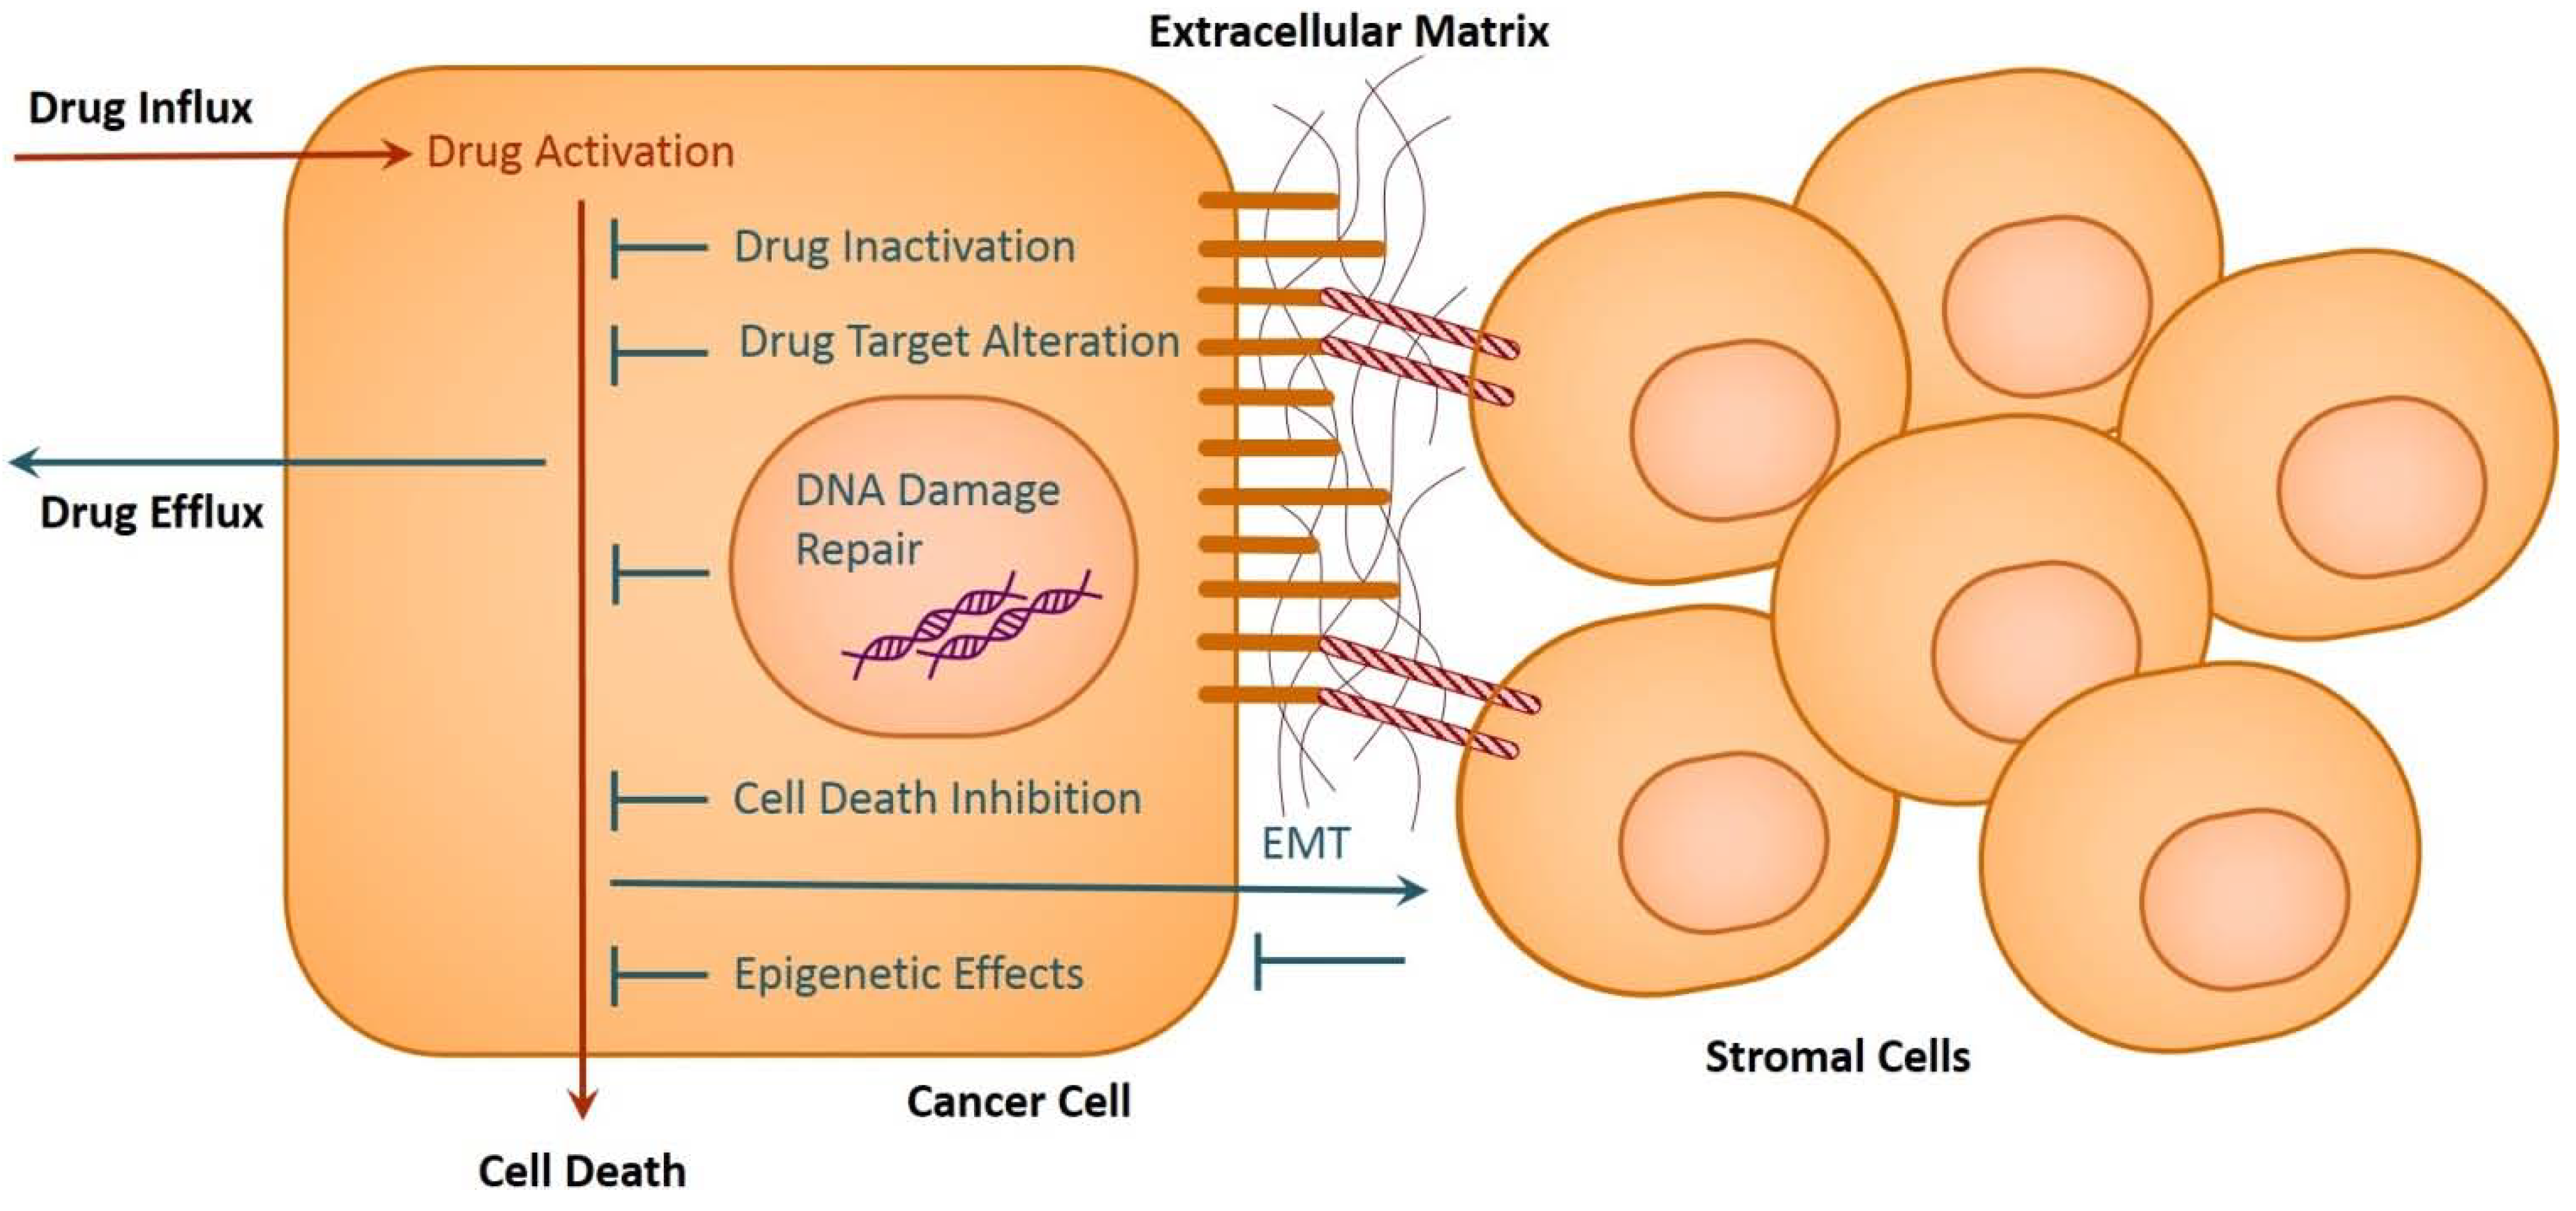 drug resistance mechanisms in cancer cells Abstract the mechanisms of intrinsic and acquired resistance to methotrexate (mtx) in human tumors are reviewed herein in blasts from patients with acute lymphocytic leukemia, resistance mechanisms found are decreased uptake and increased dihydrofolate reductase (dhfr) activity.